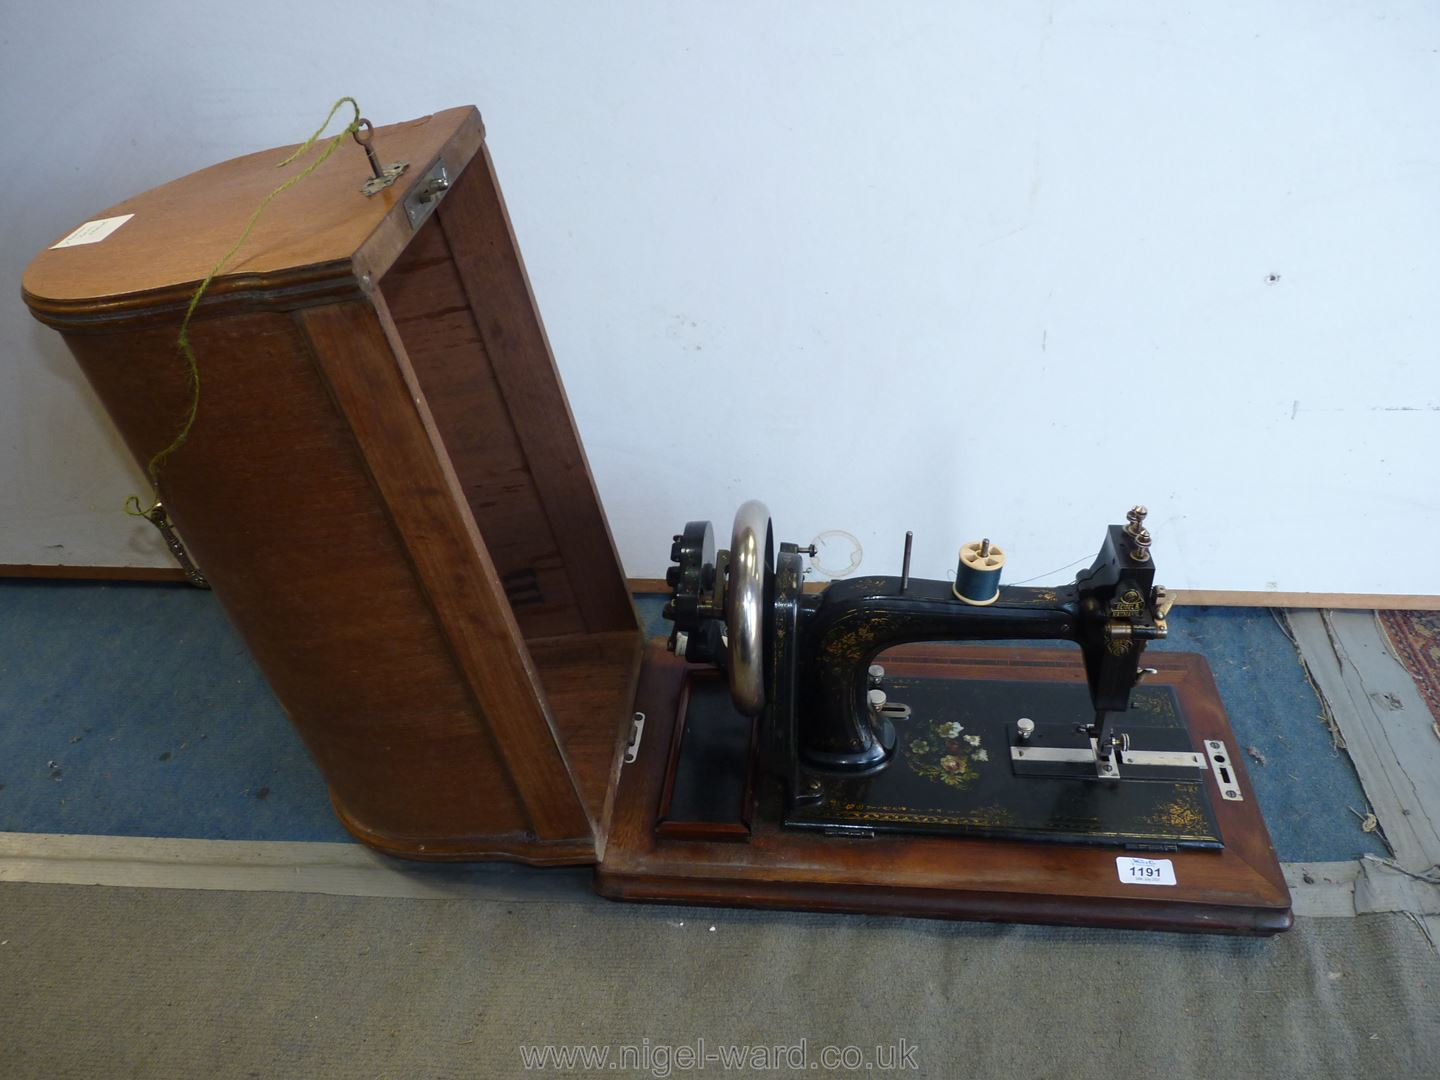 A Naumann Hand Sewing Machine in wooden case. - Image 2 of 3